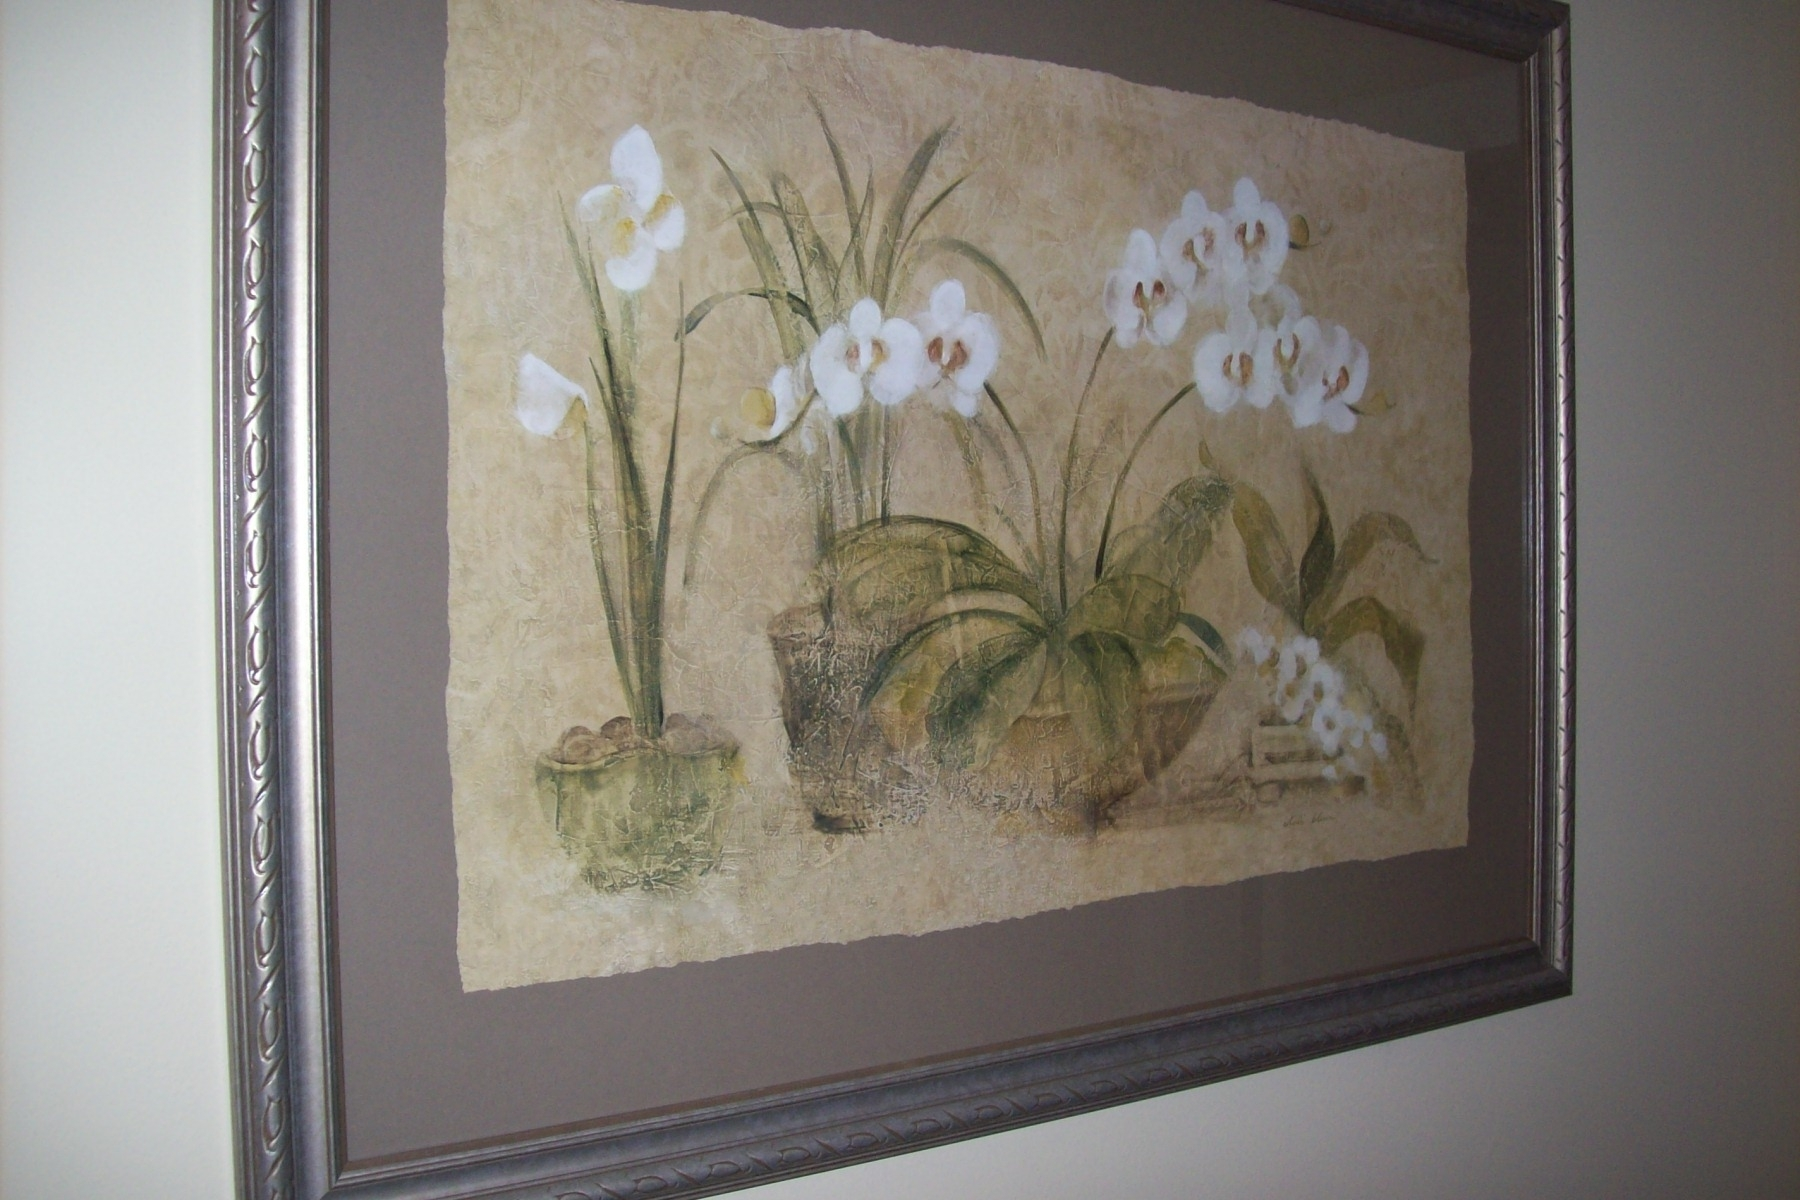 Cheri Blum Orchid Print Set–$100 | Greatstuff4Sale's Blog With Regard To Most Up To Date Cheri Blum Framed Art Prints (Gallery 3 of 15)